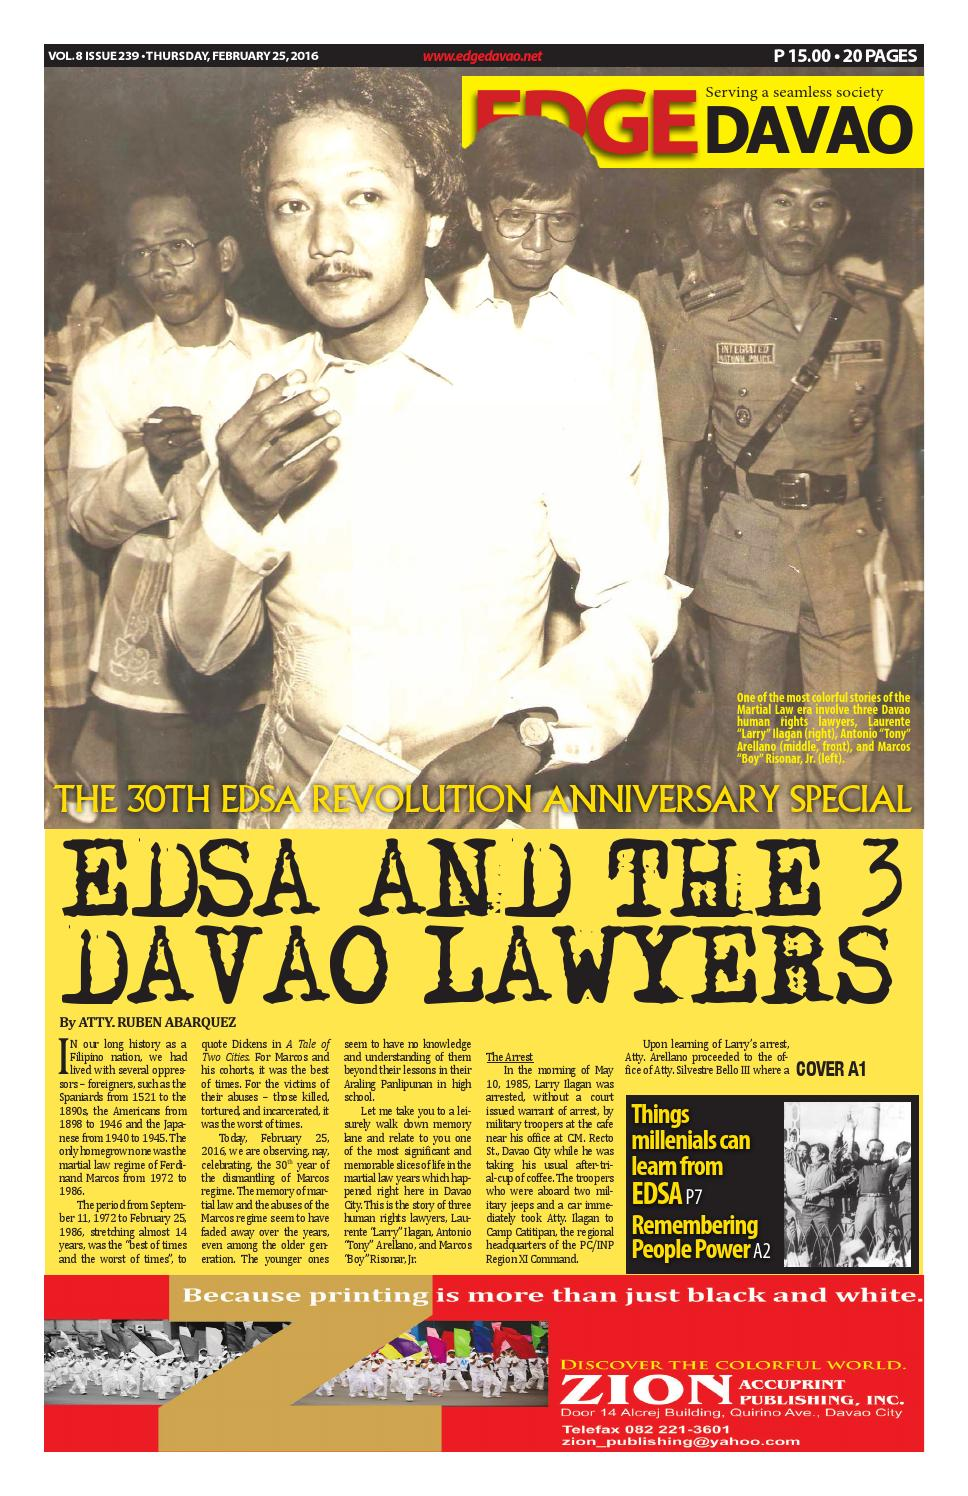 Edge Davao 6 Issue 239 by edge davao the business paper - issuu